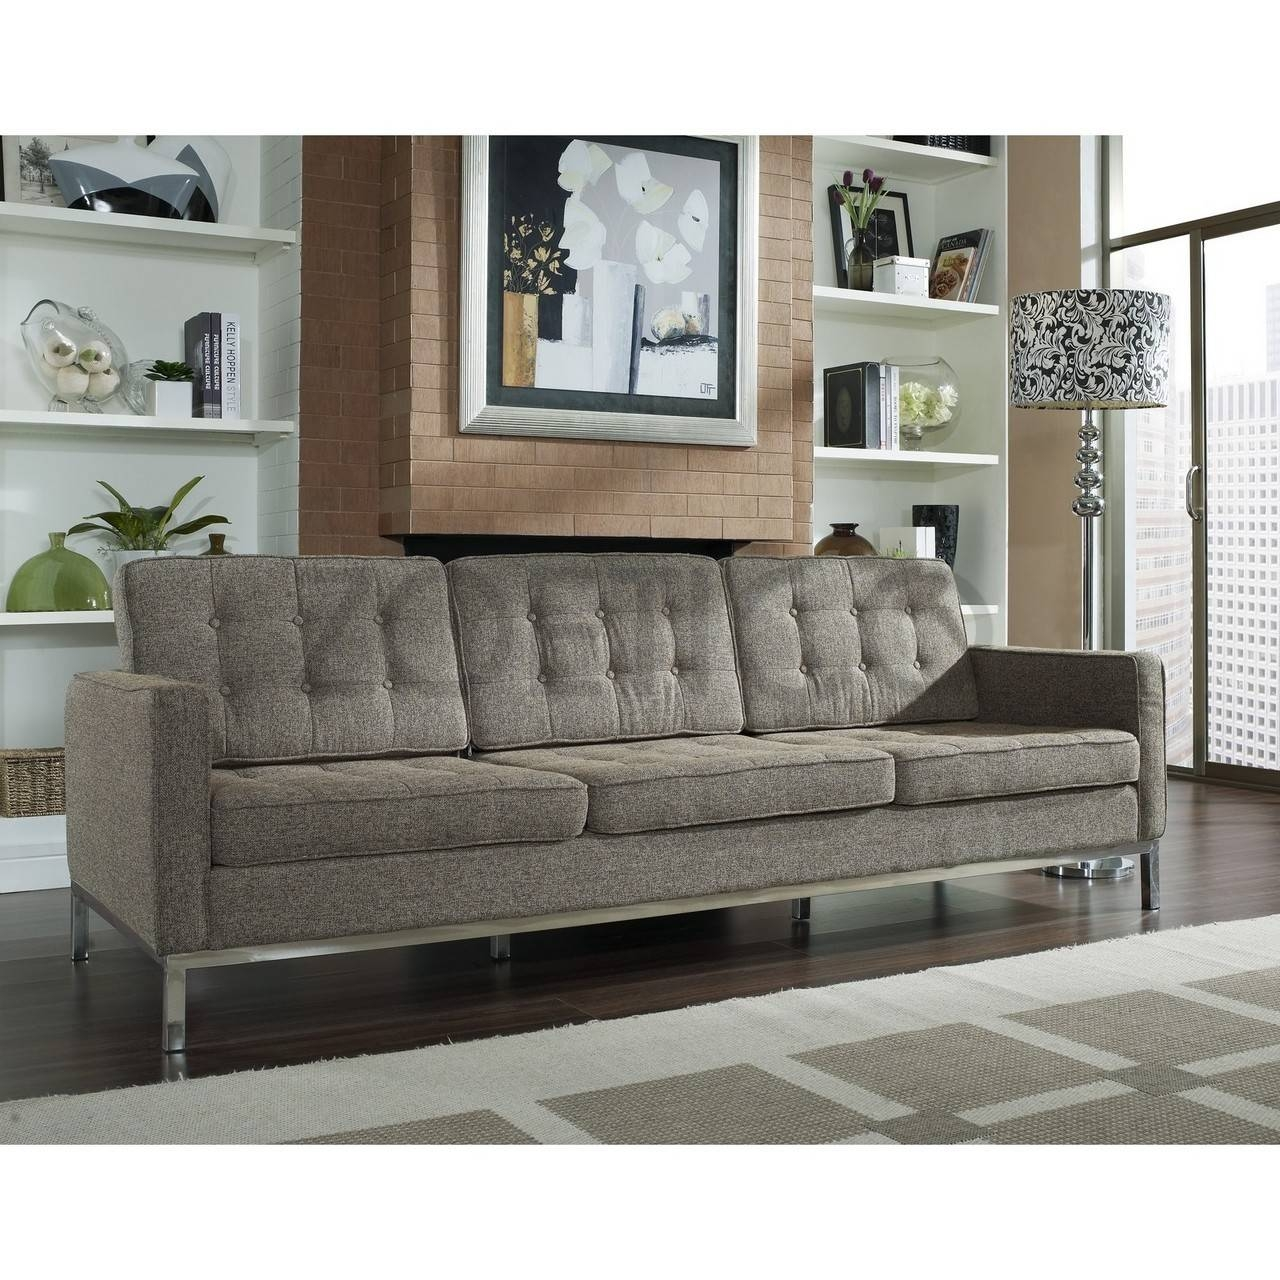 Florence Knoll Style Sofa In Fabric – (Multiple Colors/materials Within Knoll Sofas (View 14 of 15)